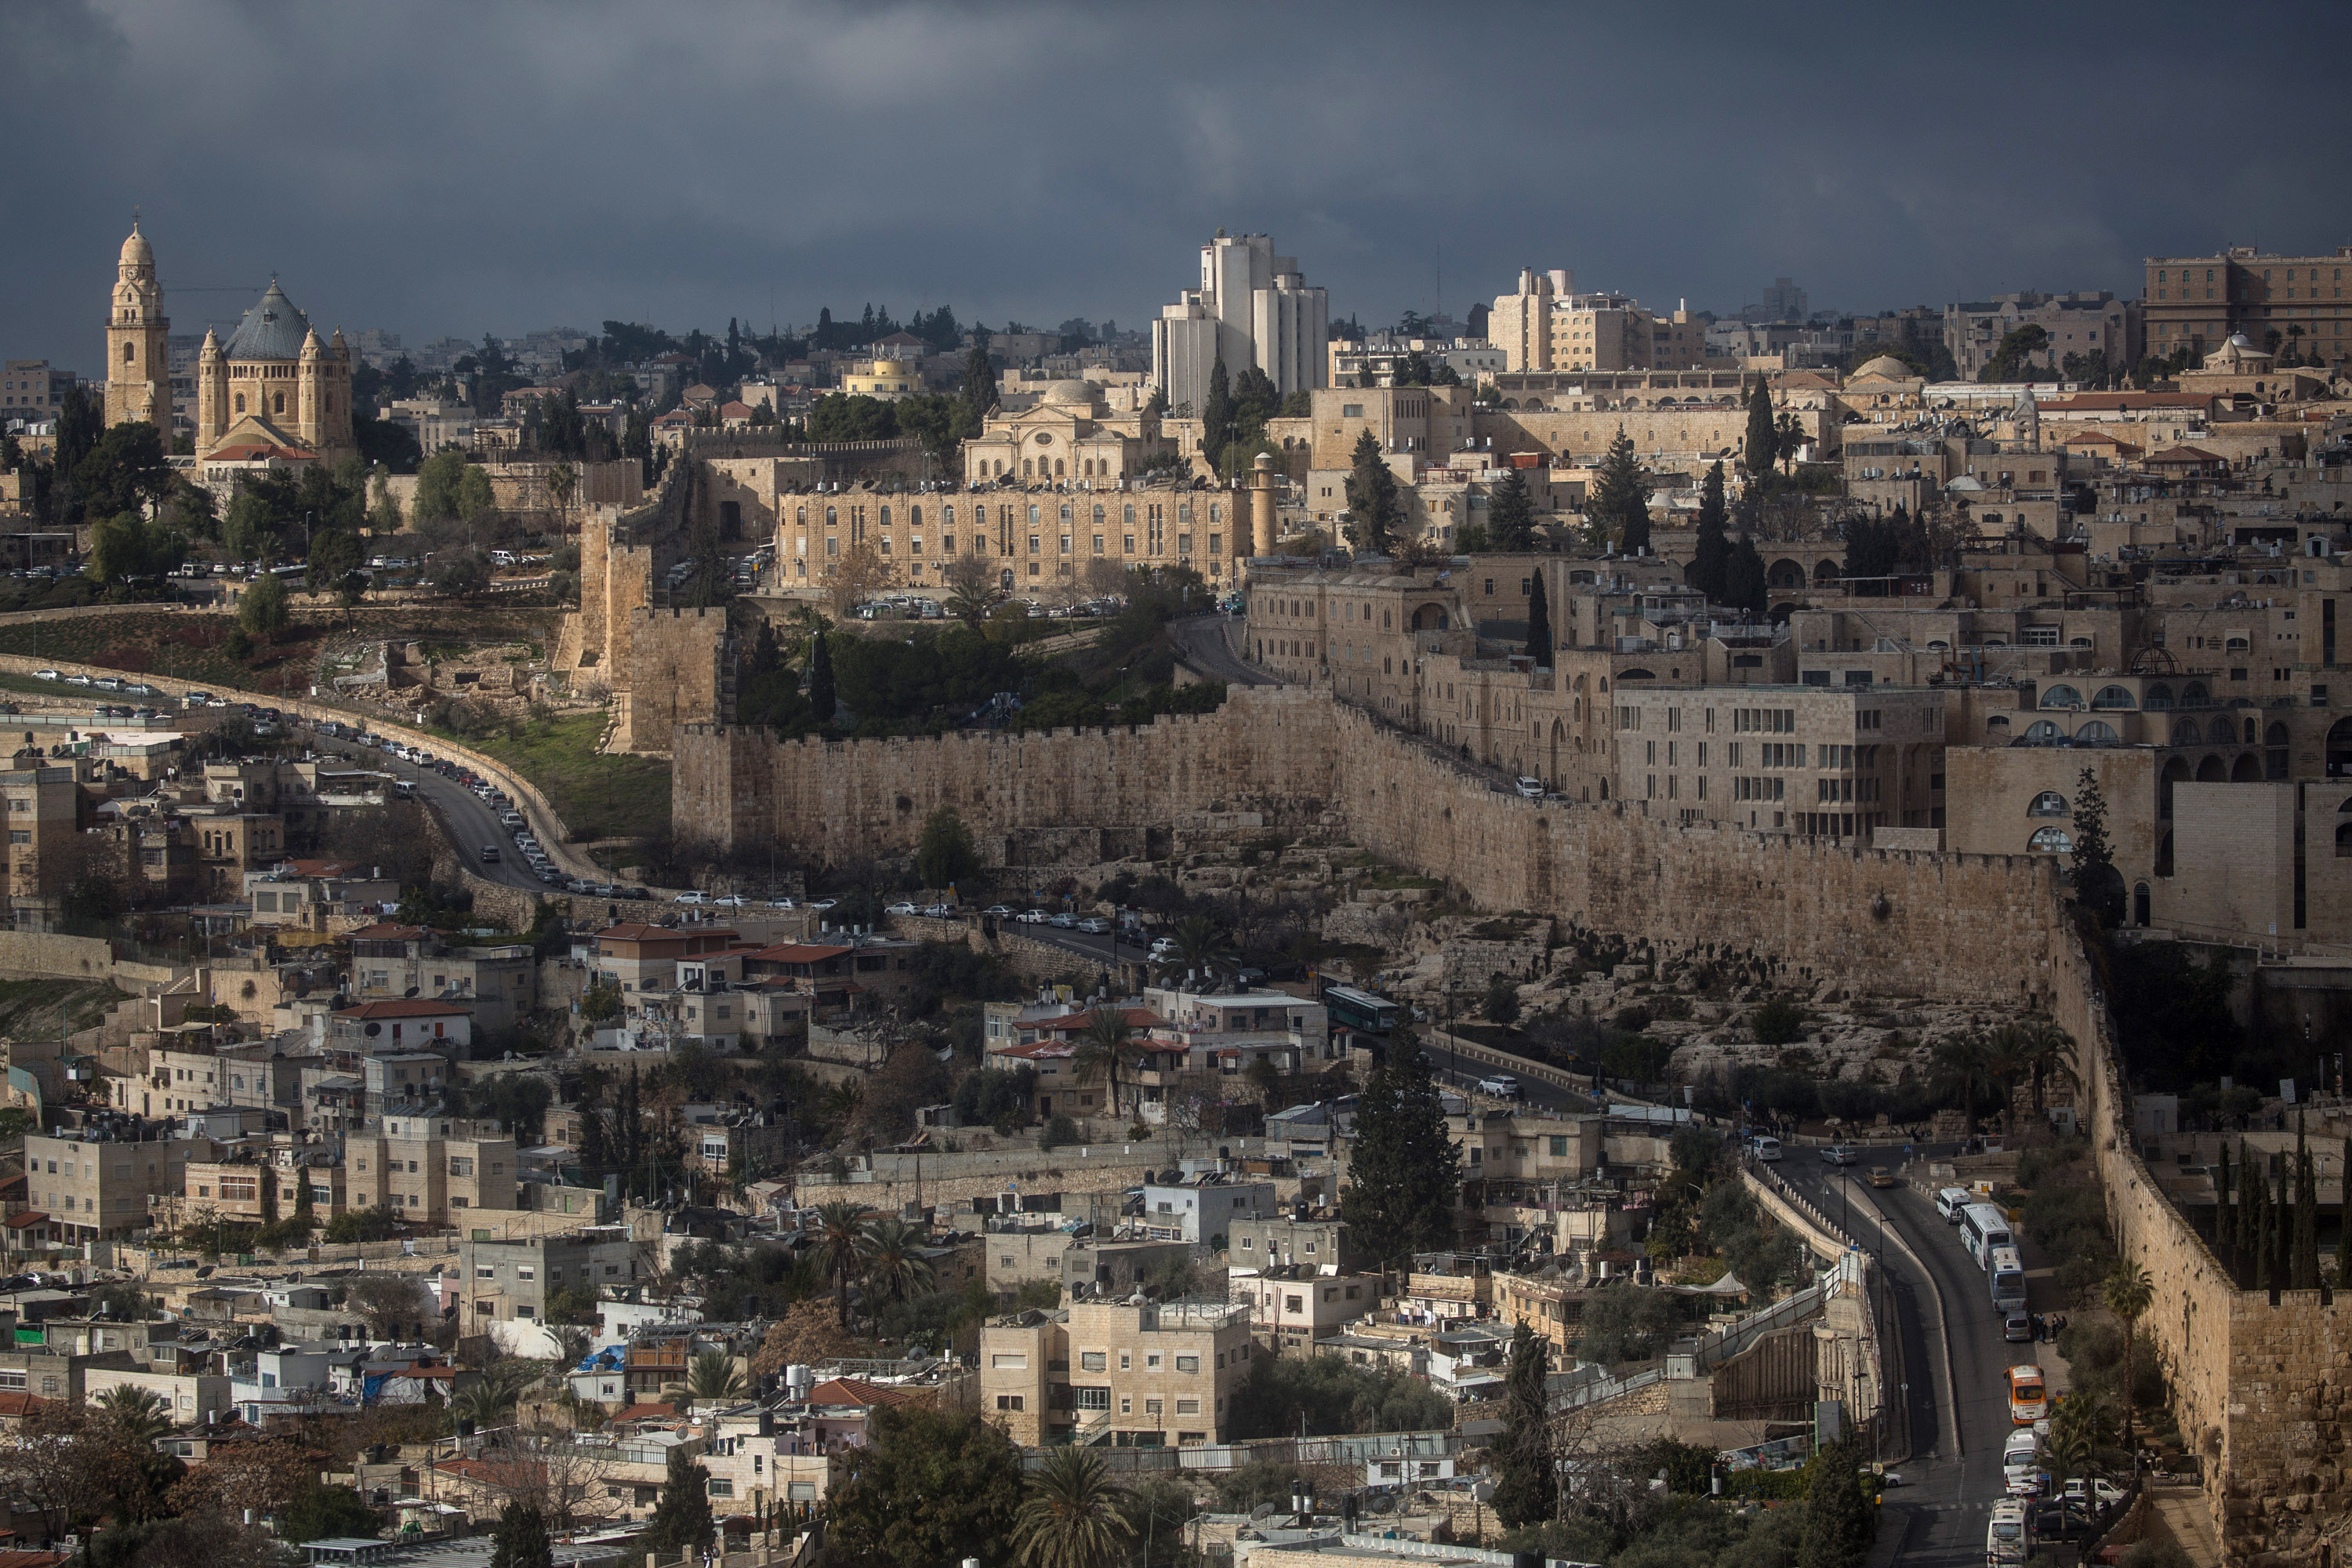 JERUSALEM, ISRAEL - JANUARY 13: The Old City is seen from the Mount of Olives on January 13, 2017 in Jerusalem, Israel. 70 countries attended the recent Paris Peace Summit and called on Israel and Palestinians to resume negotiations that would lead to a two-state solution, however the recent proposal by U.S President-elect Donald Trump to move the US embassy from Tel Aviv to Jerusalem and last month's U.N. Security Council resolution condemning Jewish settlement activity in the West Bank have contributed to continued uncertainty across the region. The ancient city of Jerusalem where Jews, Christians and Muslims have lived side by side for thousands of years and is home to the Al Aqsa Mosque compound or for Jews The Temple Mount, continues to be a focus as both Israelis and Palestinians claim the city as their capital. The Israeli-Palestinian conflict has continued since 1947 when Resolution 181 was passed by the United Nations, dividing Palestinian territories into Jewish and Arab states. The Israeli settlement program has continued to cause tension as new settlements continue to encroach on land within the Palestinian territories. The remaining Palestinian territory is made up of the West Bank and the Gaza strip. (Photo by Chris McGrath/Getty Images)